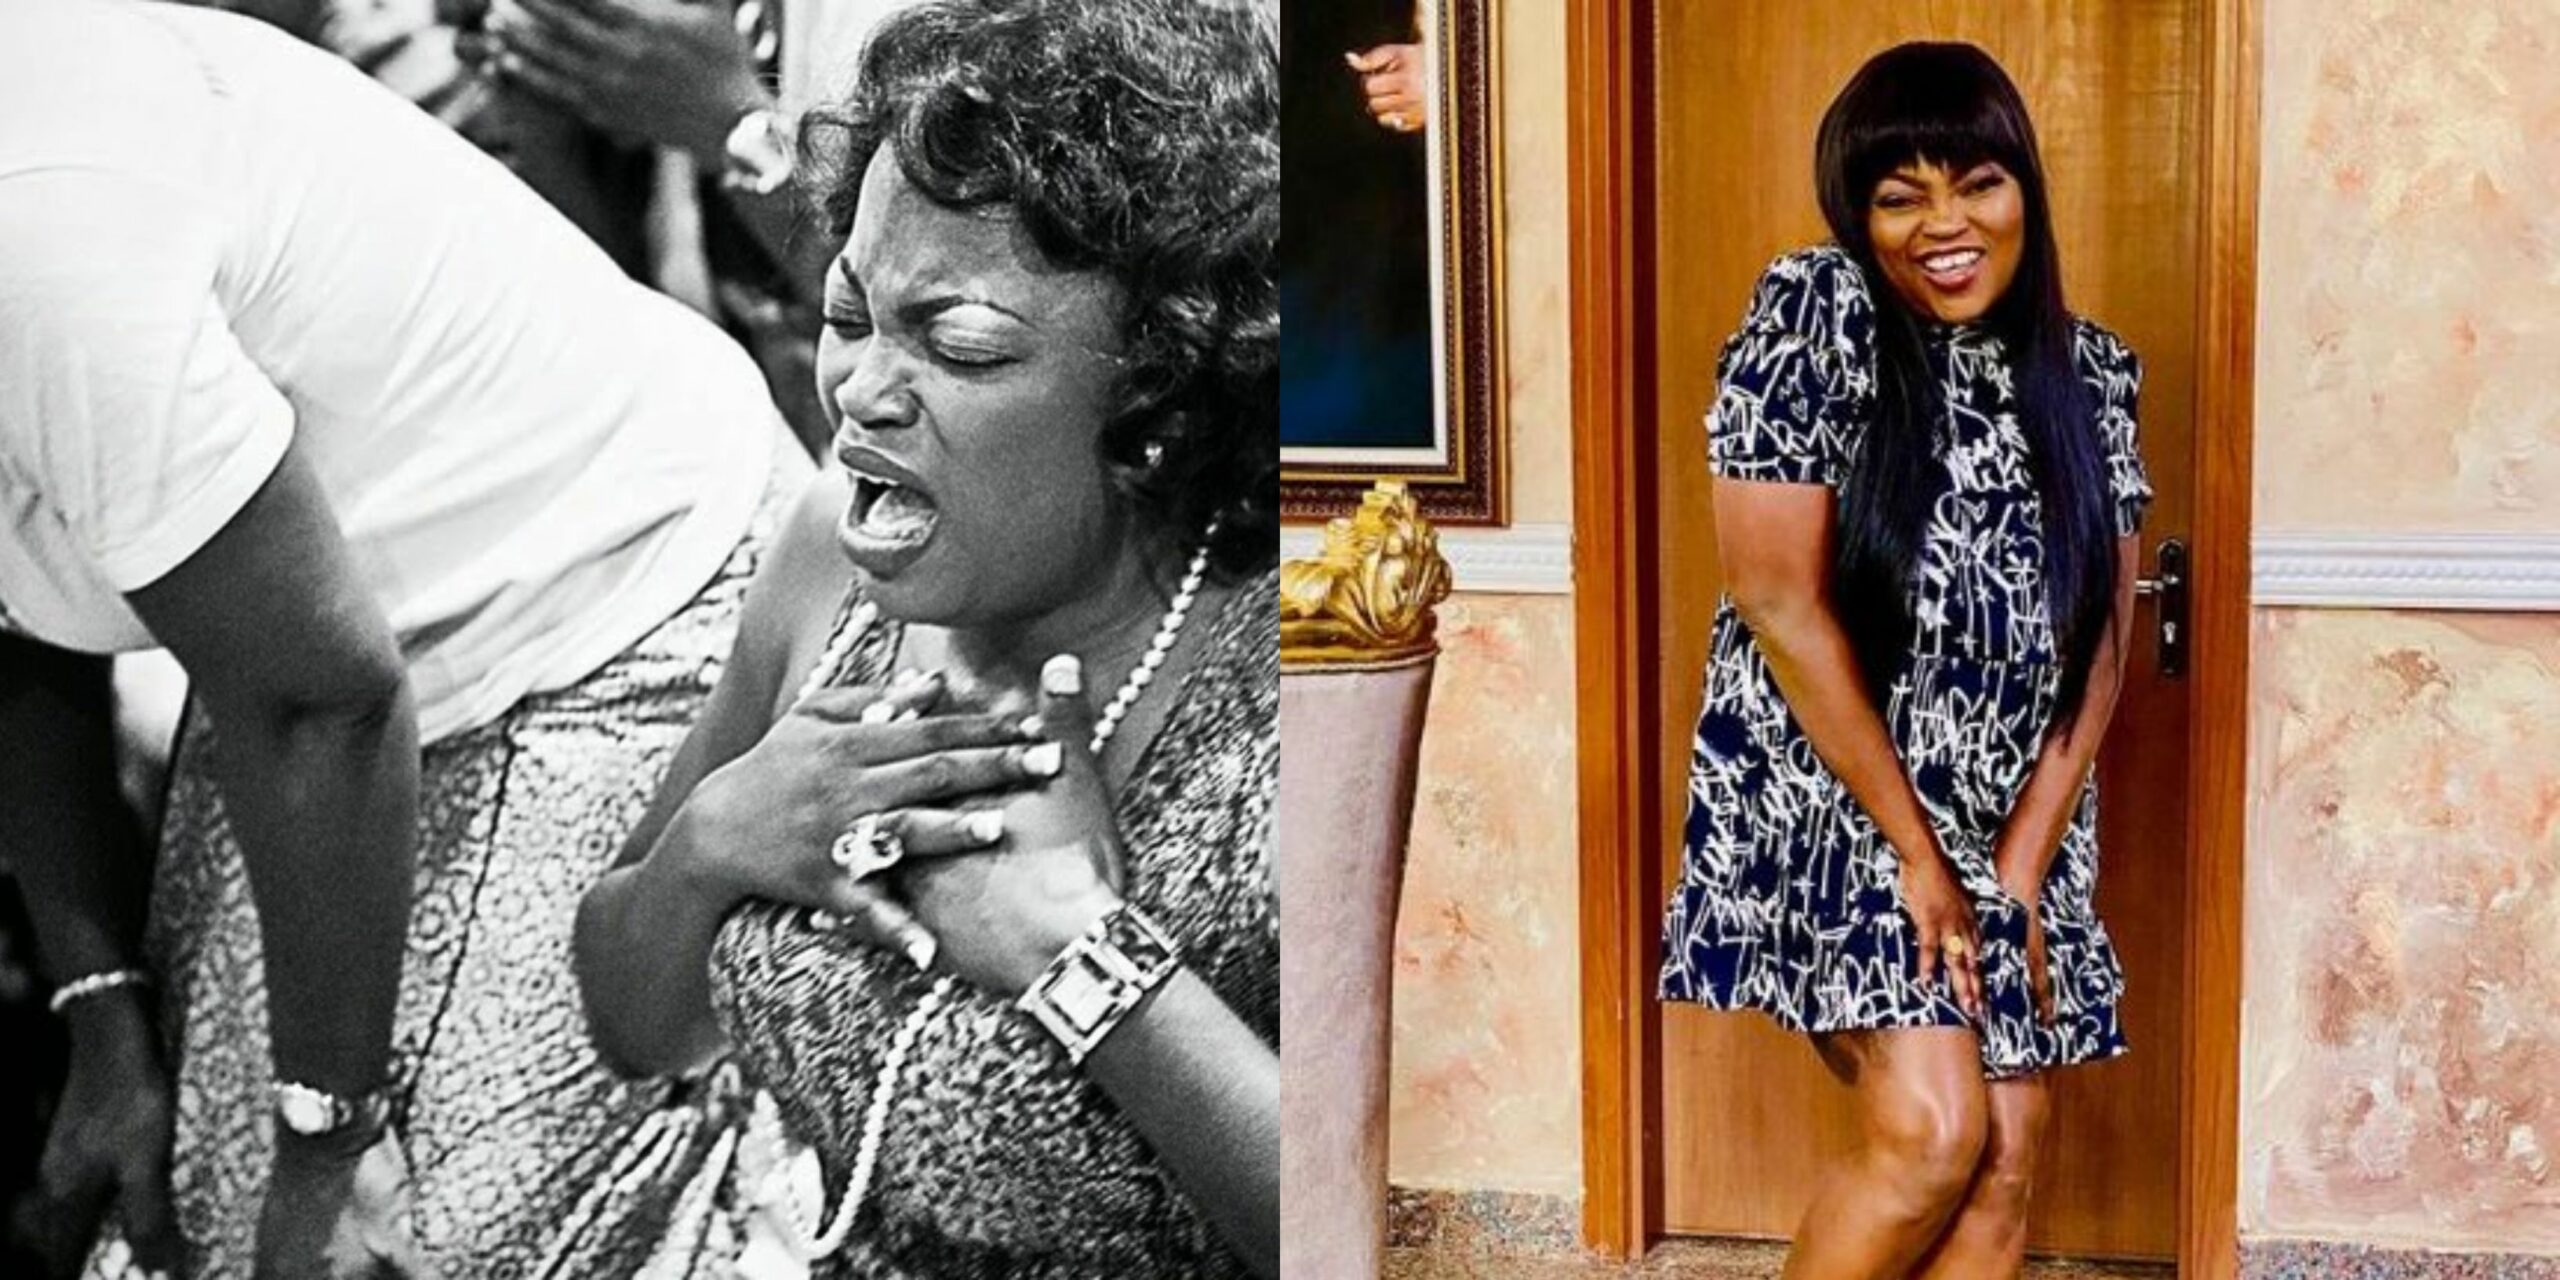 How Funke Akindele went back to her 'source' and came back stronger after arrest and conviction saga